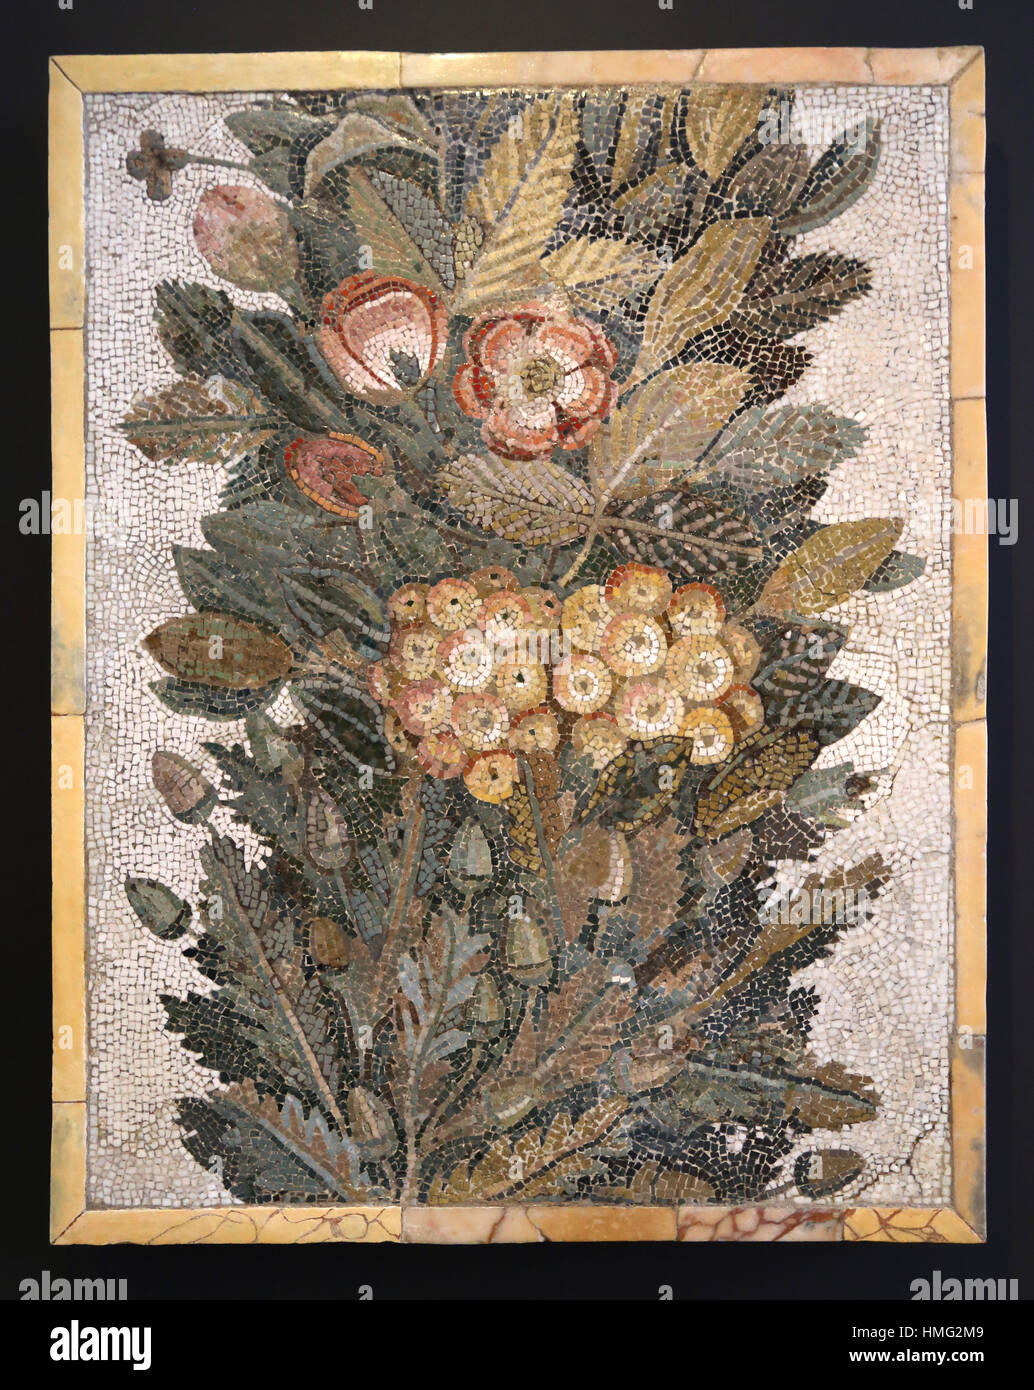 Floral mosaic. Limestone and vitreous paste. 1th century. Italy. National Archaeological Museum, Madrid. Spain. - Stock Image